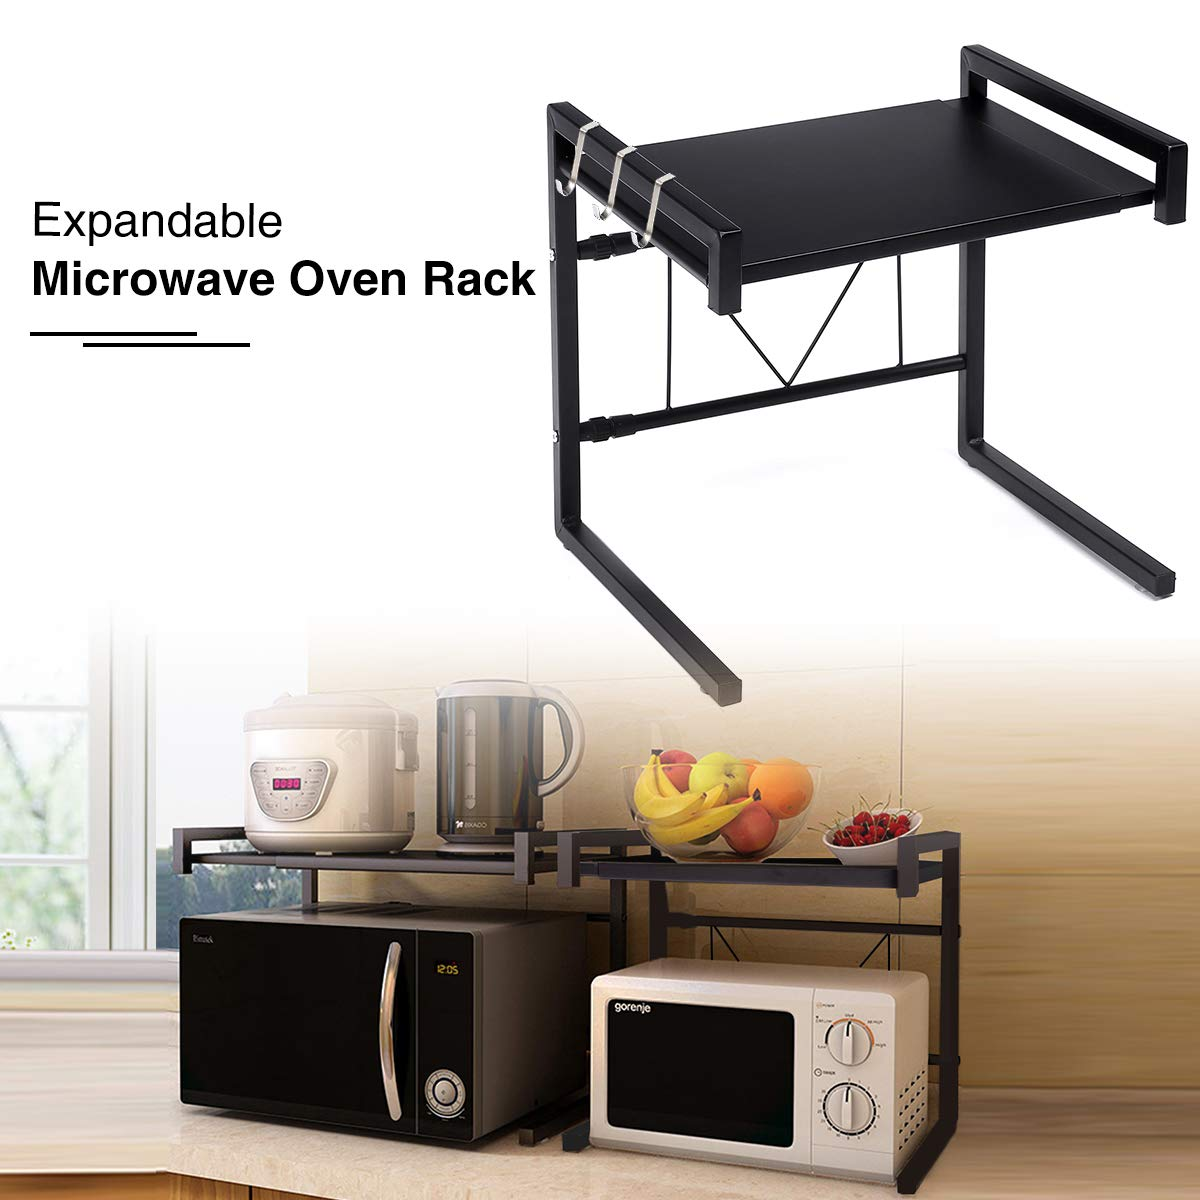 "GEMITTO Microwave Oven Rack, Expandable Carbon Steel Microwave Shelf Kitchen Counter Shelf 3 Hooks, 55lbs Weight Capacity (14.17""x16.54"") Black"